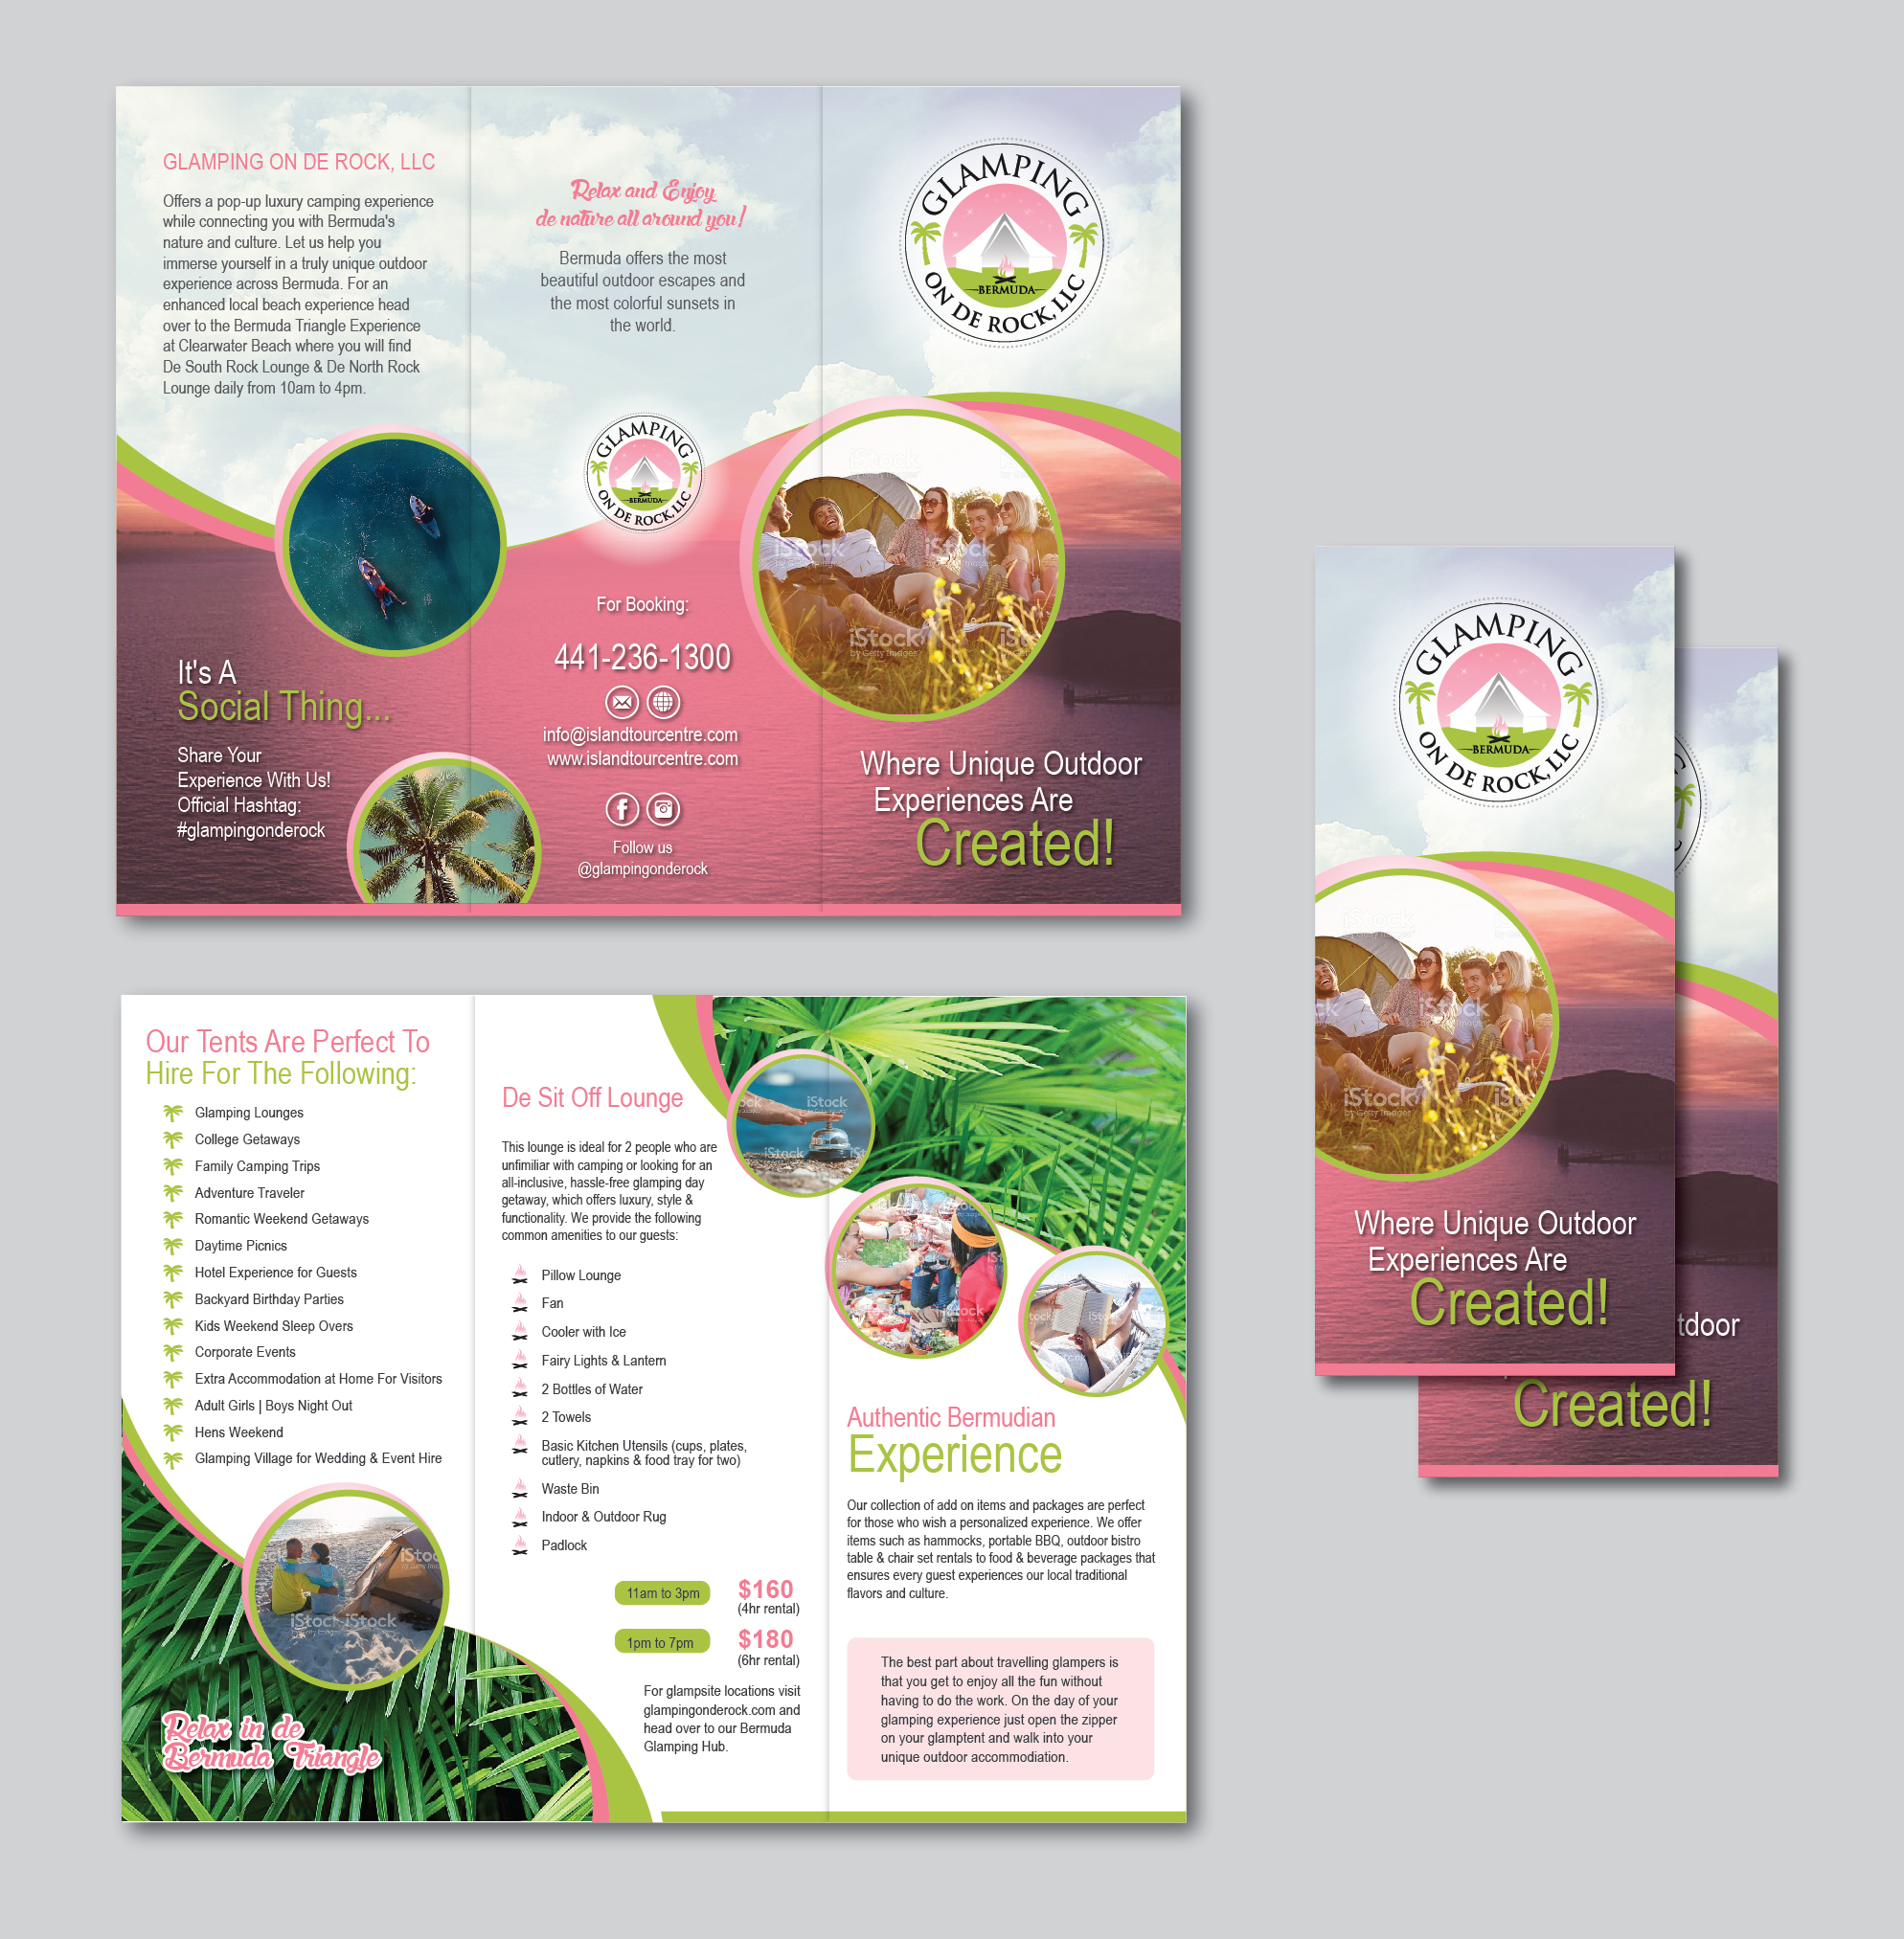 Luxury Pop up Camping Experience Brochure - Hospitality Industry